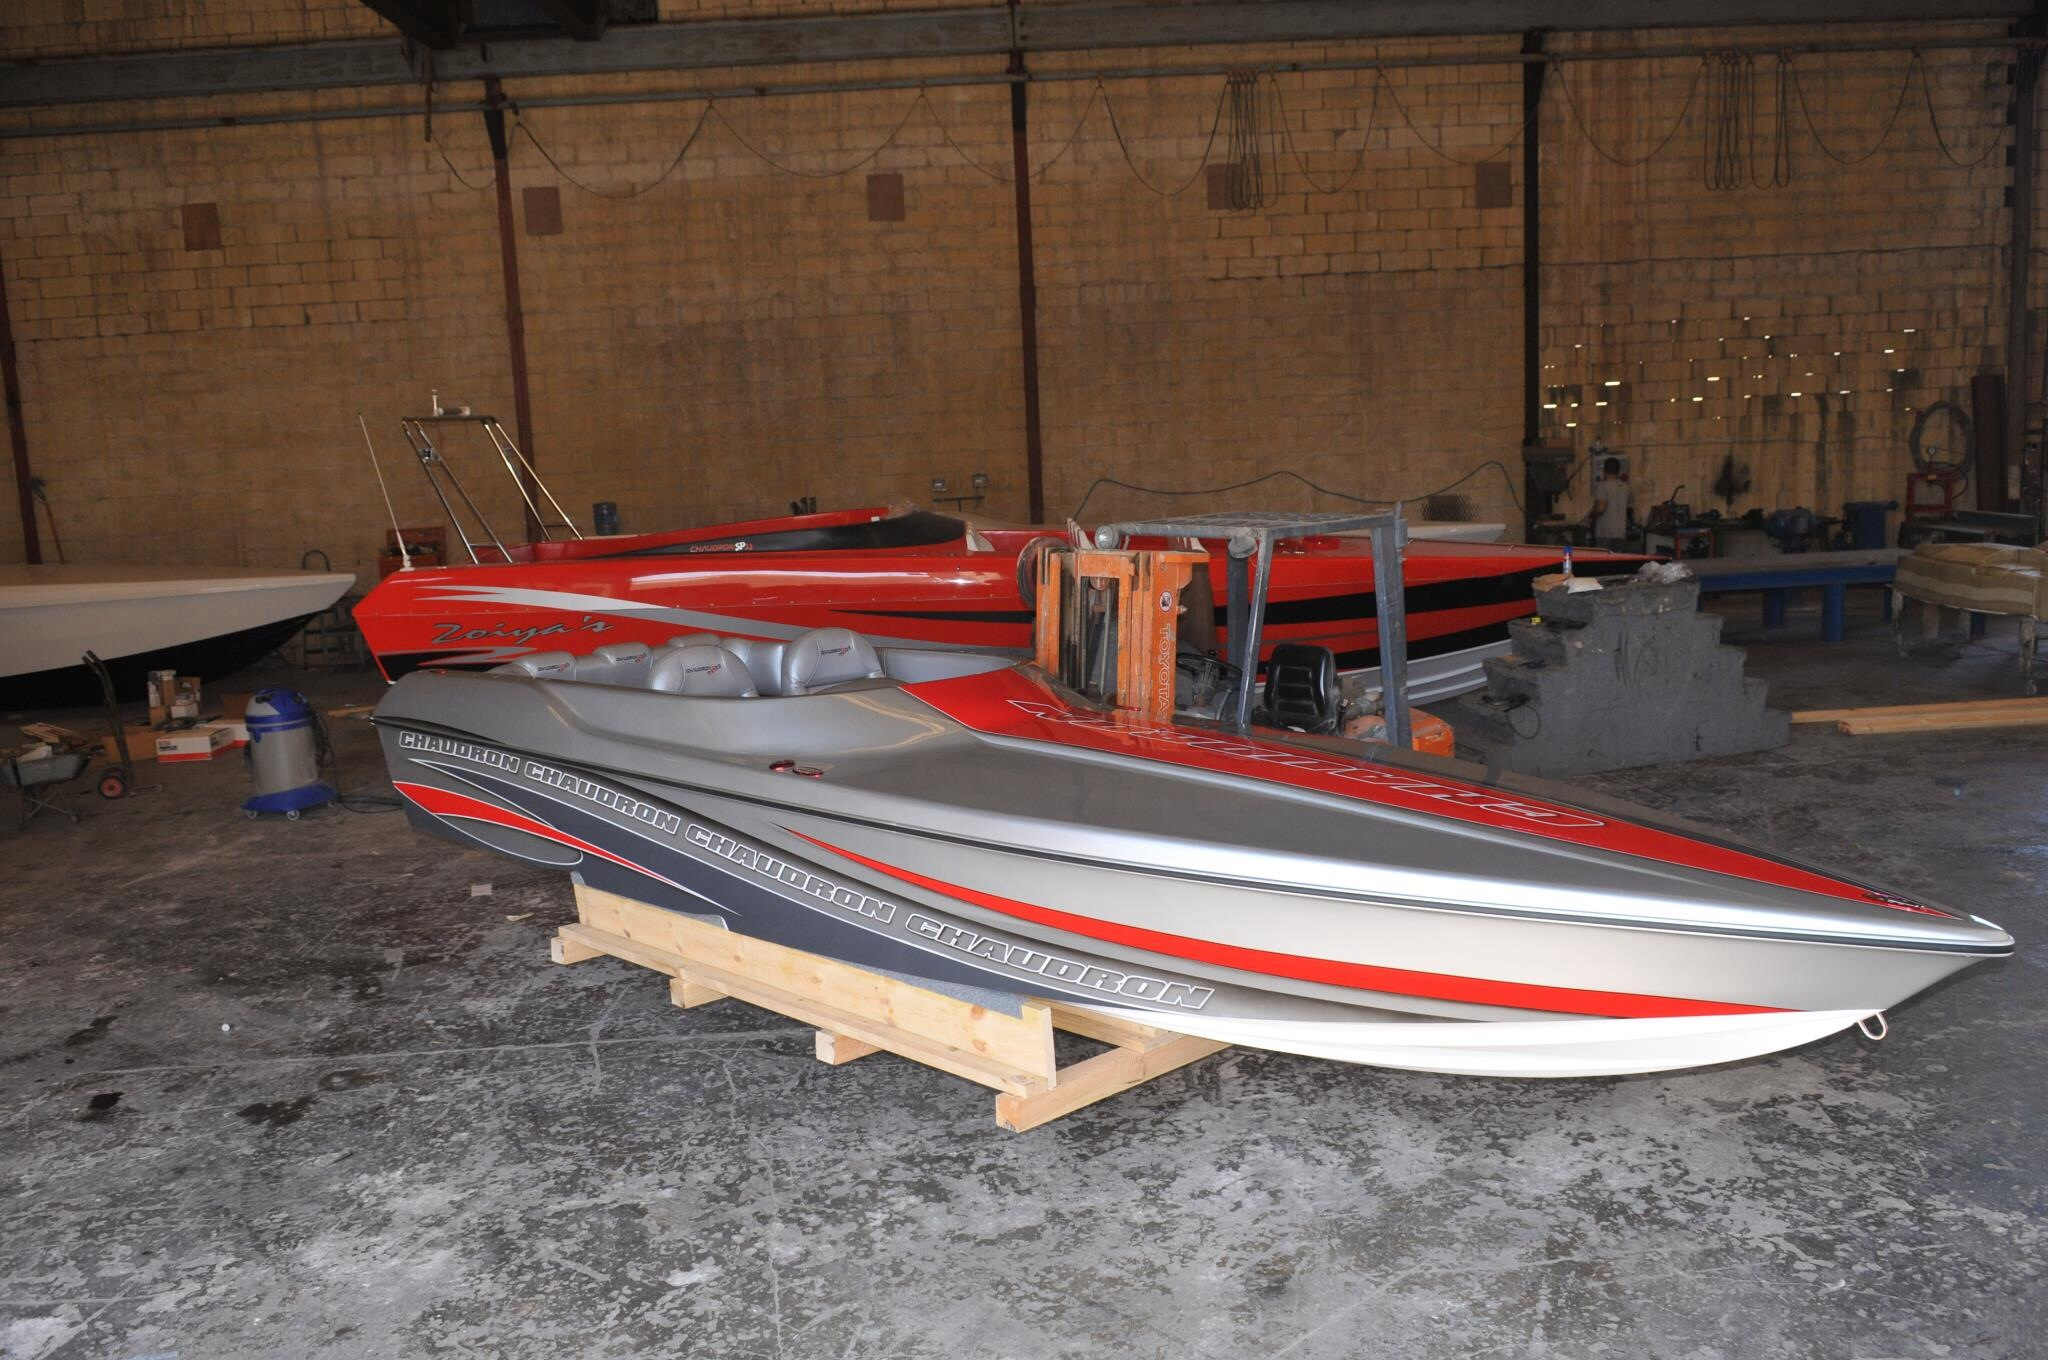 The Chaudron Pro S22 is a very narrow, deep v design for pleasure and race. Europe produces some of the most innovative performance boats that we don't see in North America.